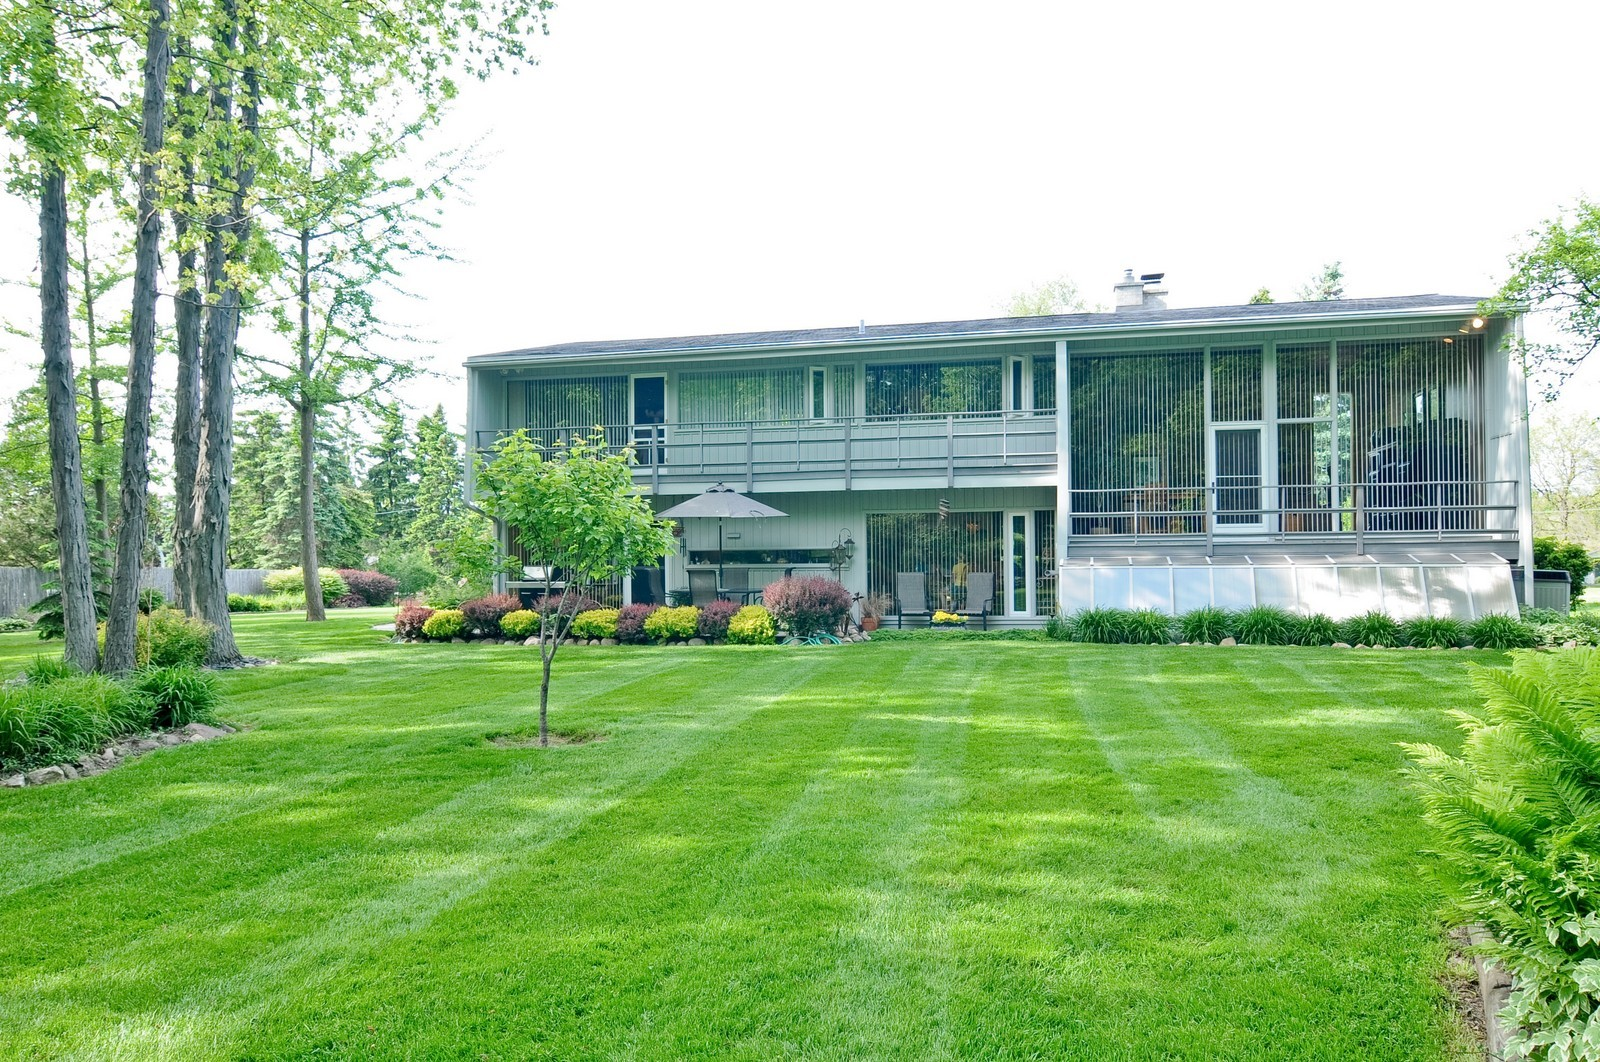 Real Estate Photography - 14185 W August Zupec, Wadsworth, IL, 60083 - Location 1